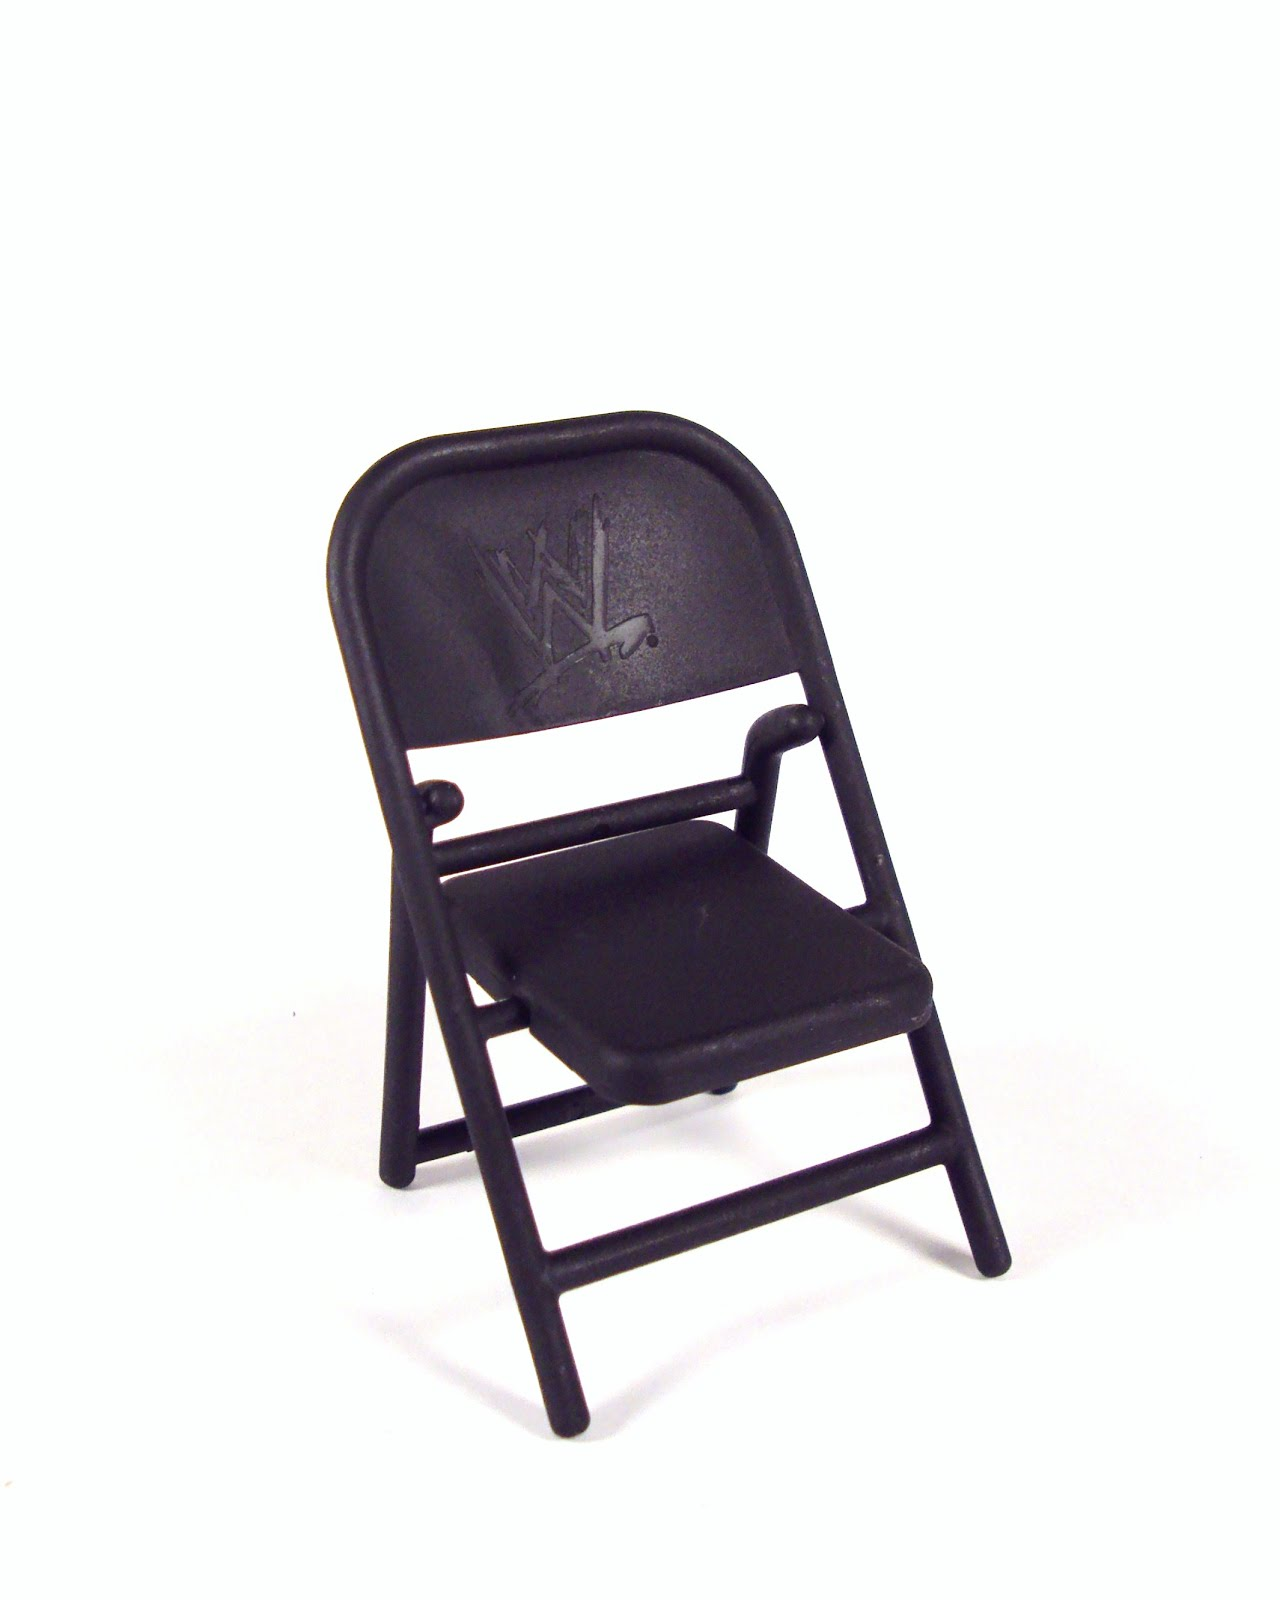 Steel Chair In Wwe Swing For Baby 3b 39s Toy Hive Elite Exclusive Undertaker Wm28 Review